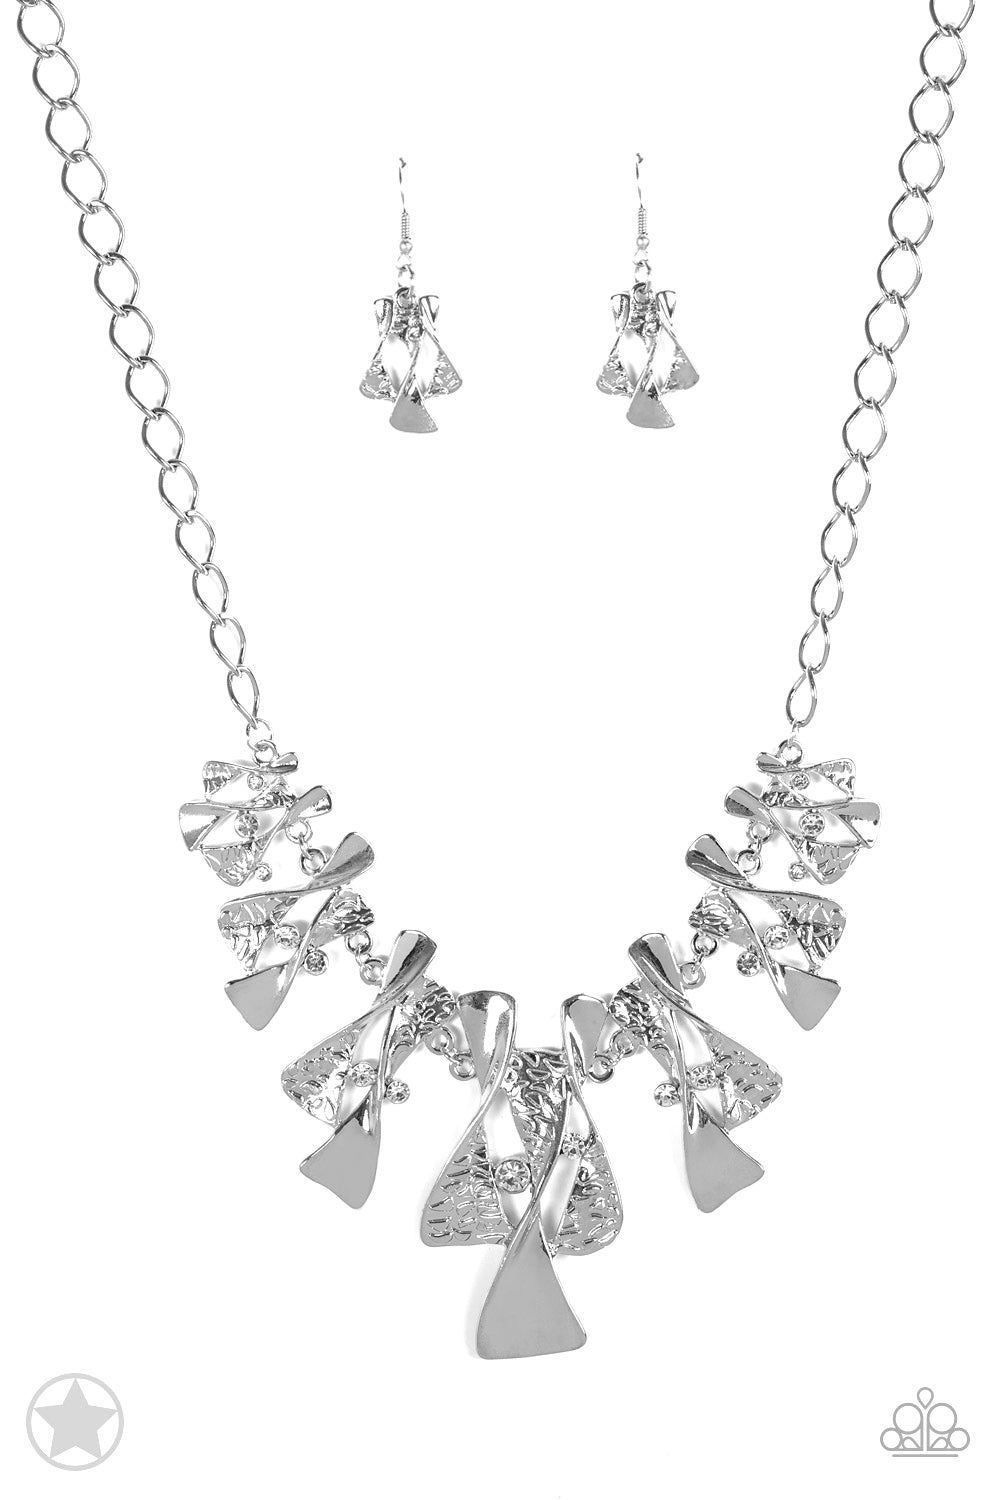 Paparazzi Necklace Blockbuster - The Sands of Time - Silver